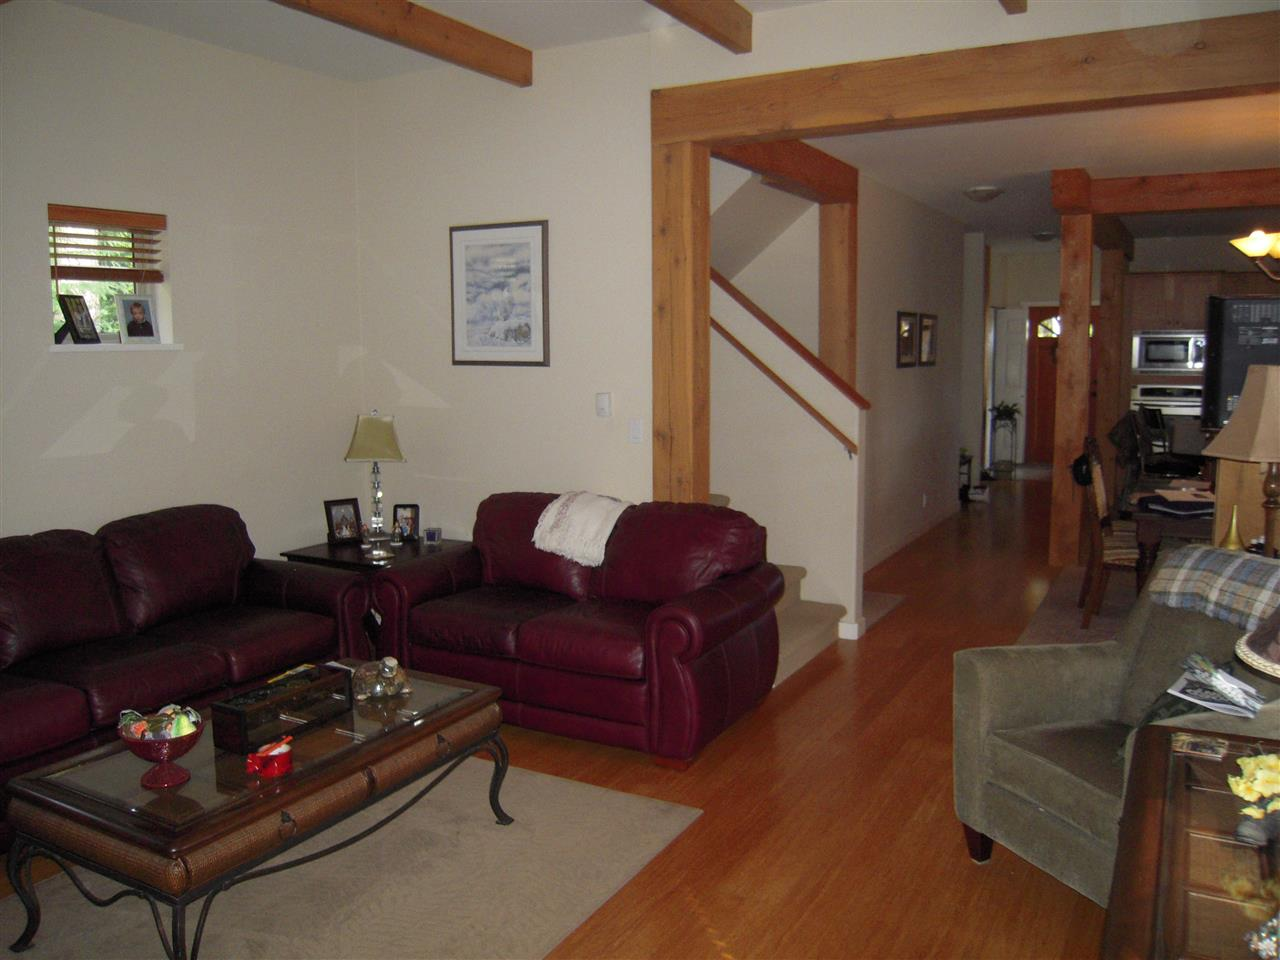 Photo 4: Photos: 5447 WAKEFIELD Road in Sechelt: Sechelt District House for sale (Sunshine Coast)  : MLS® # R2047962